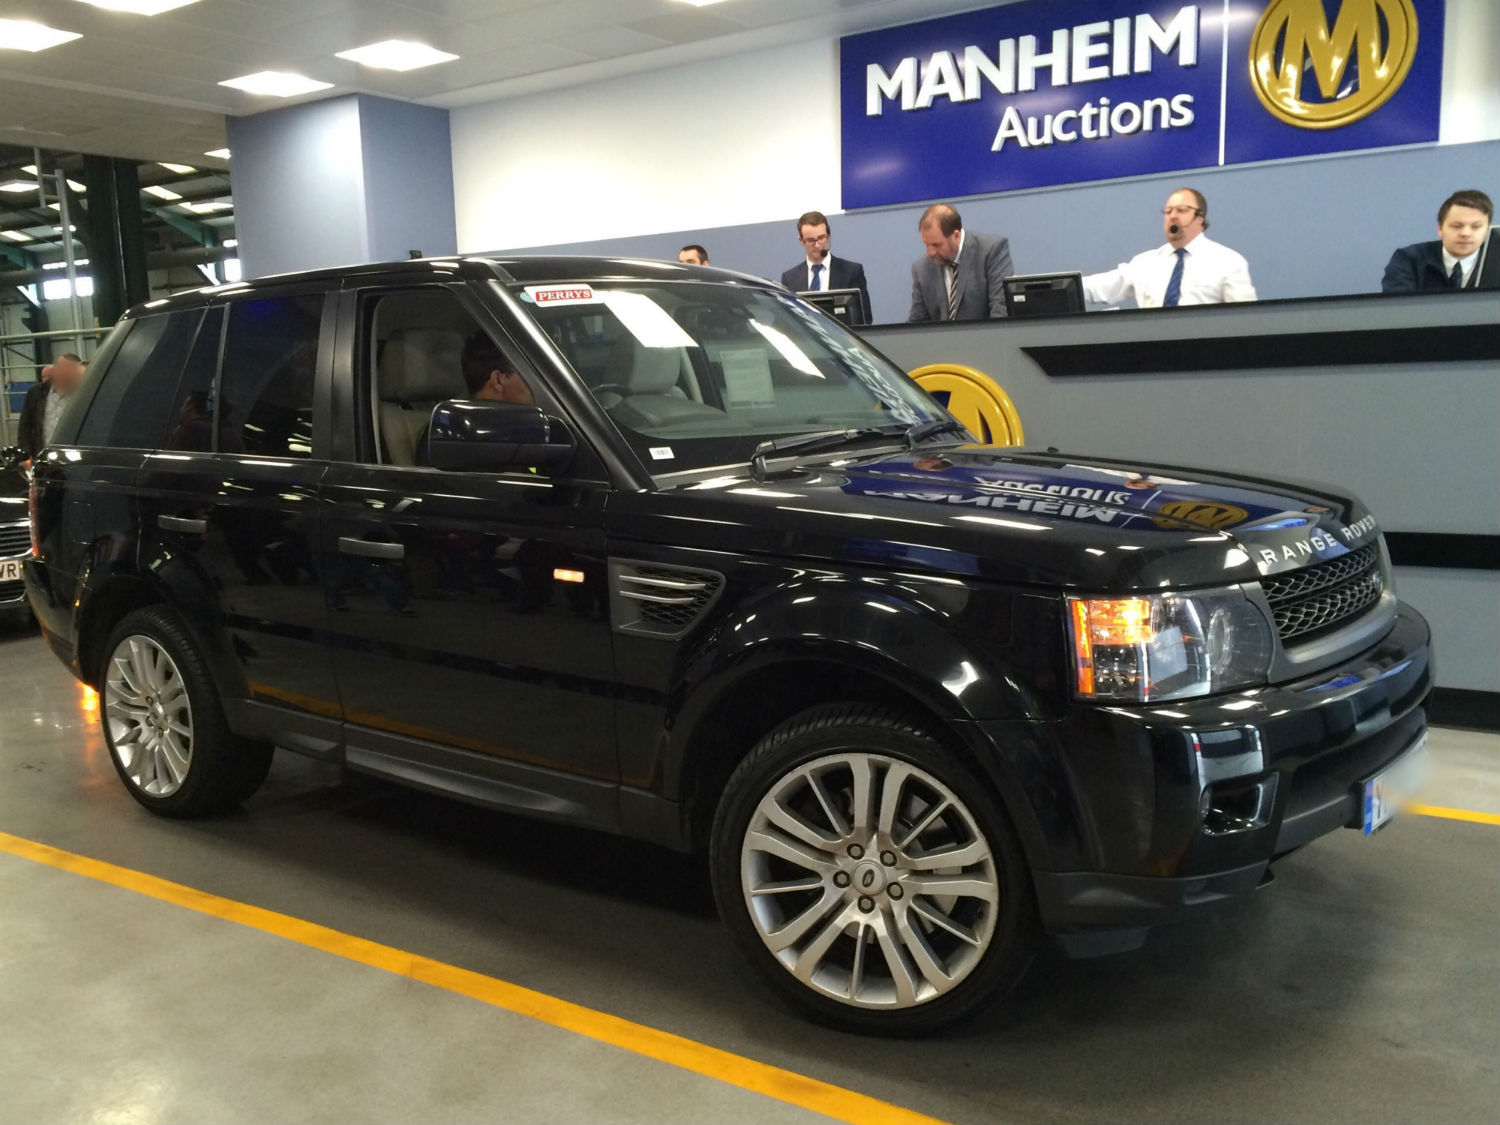 4x4 Range Rover at a Manheim auction centre